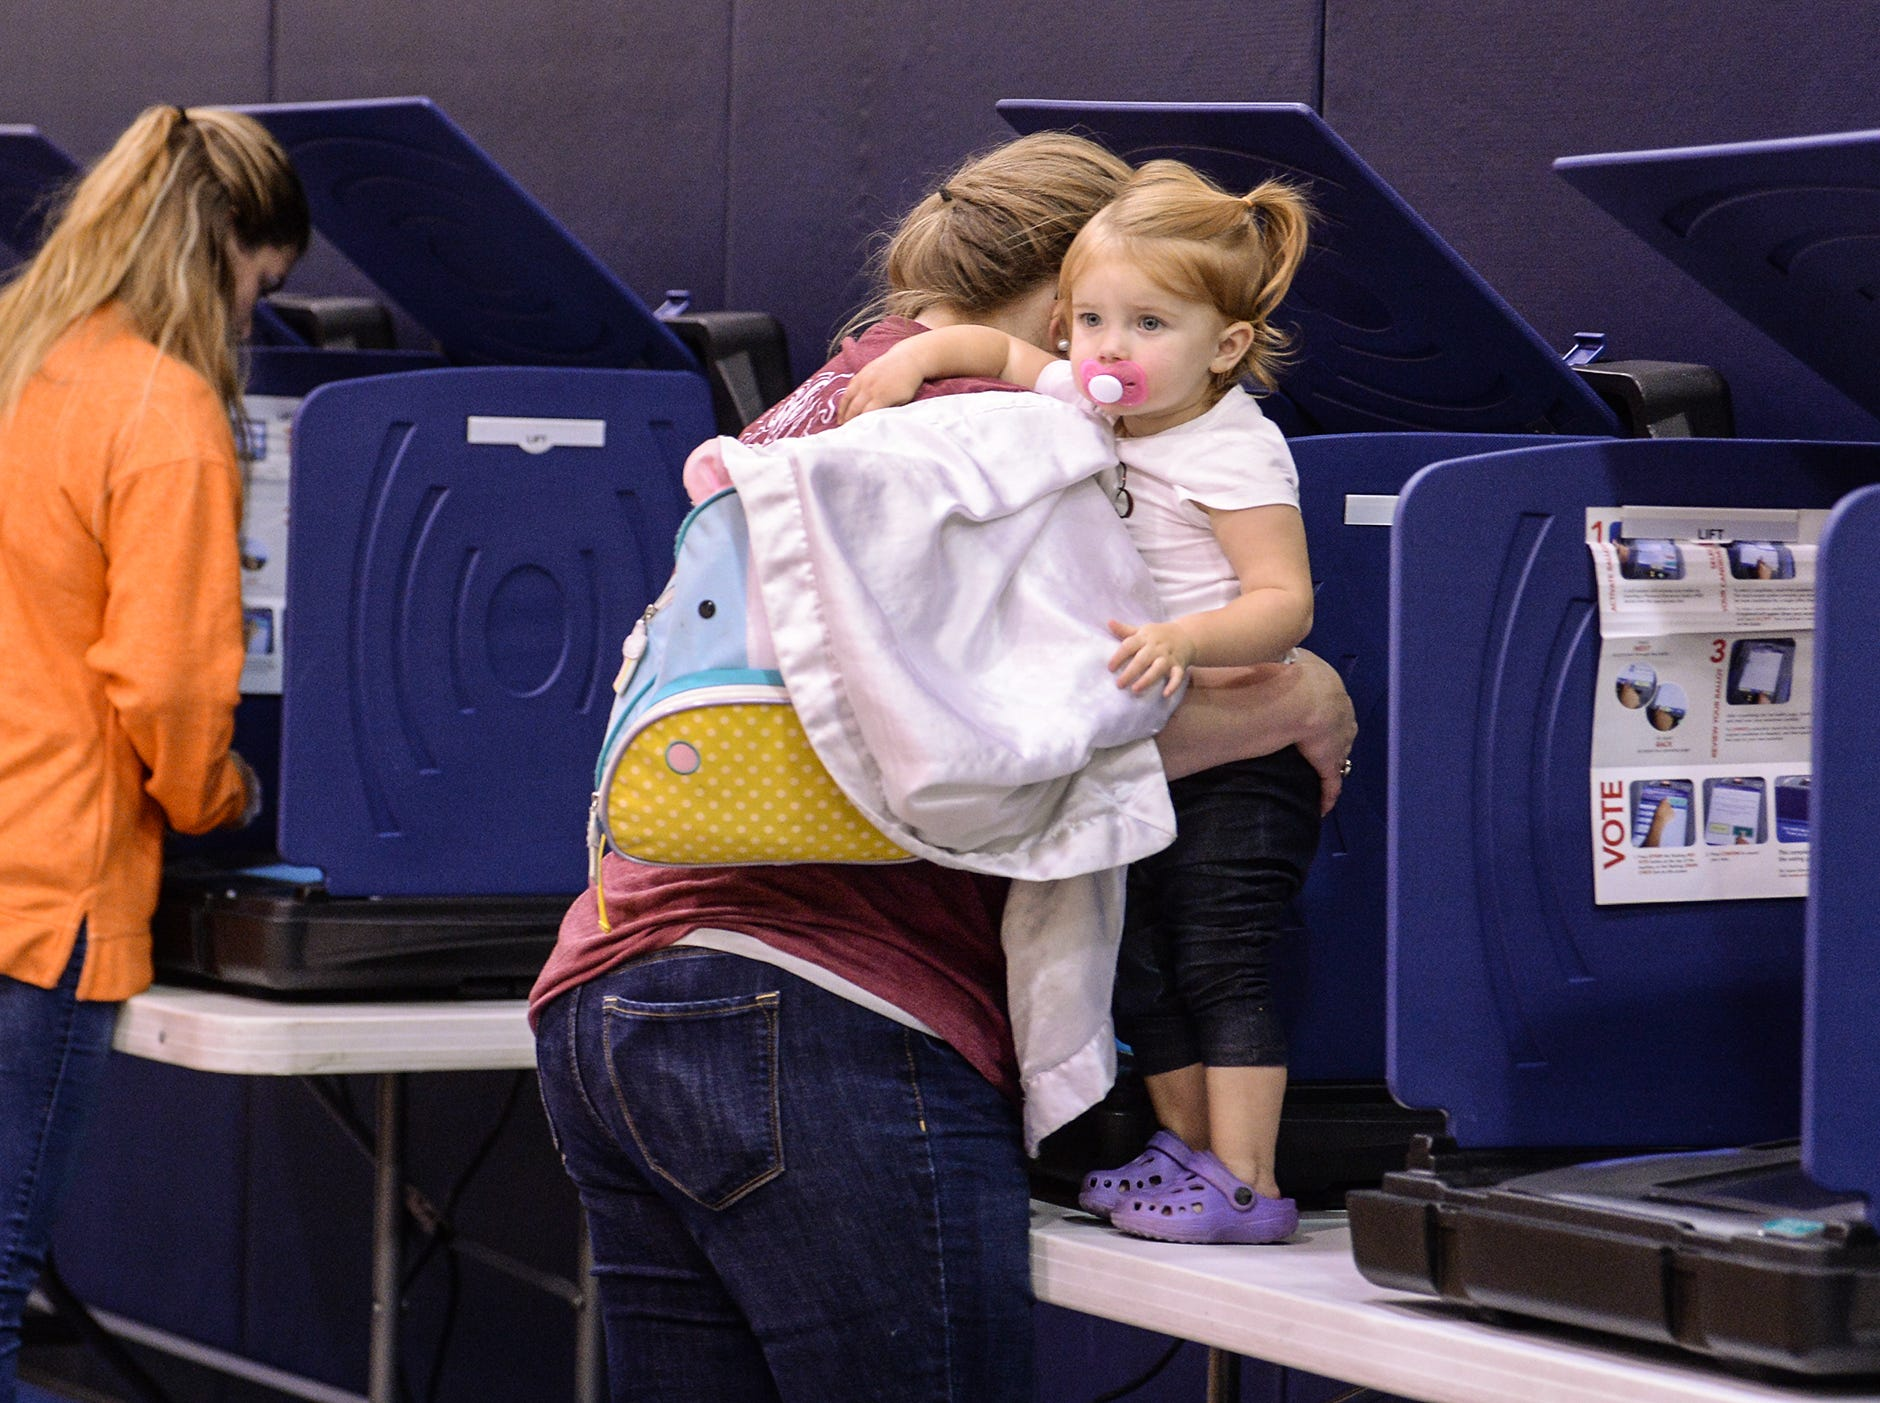 Judith Lee Carson, holding her daughter Harper, votes shortly after lunch hour at the Hammond precinct at Midway Elementary in Anderson on Tuesday, November 6, 2018. Hammond precinct had over 800 vote by lunch, one of the busiest in the county.